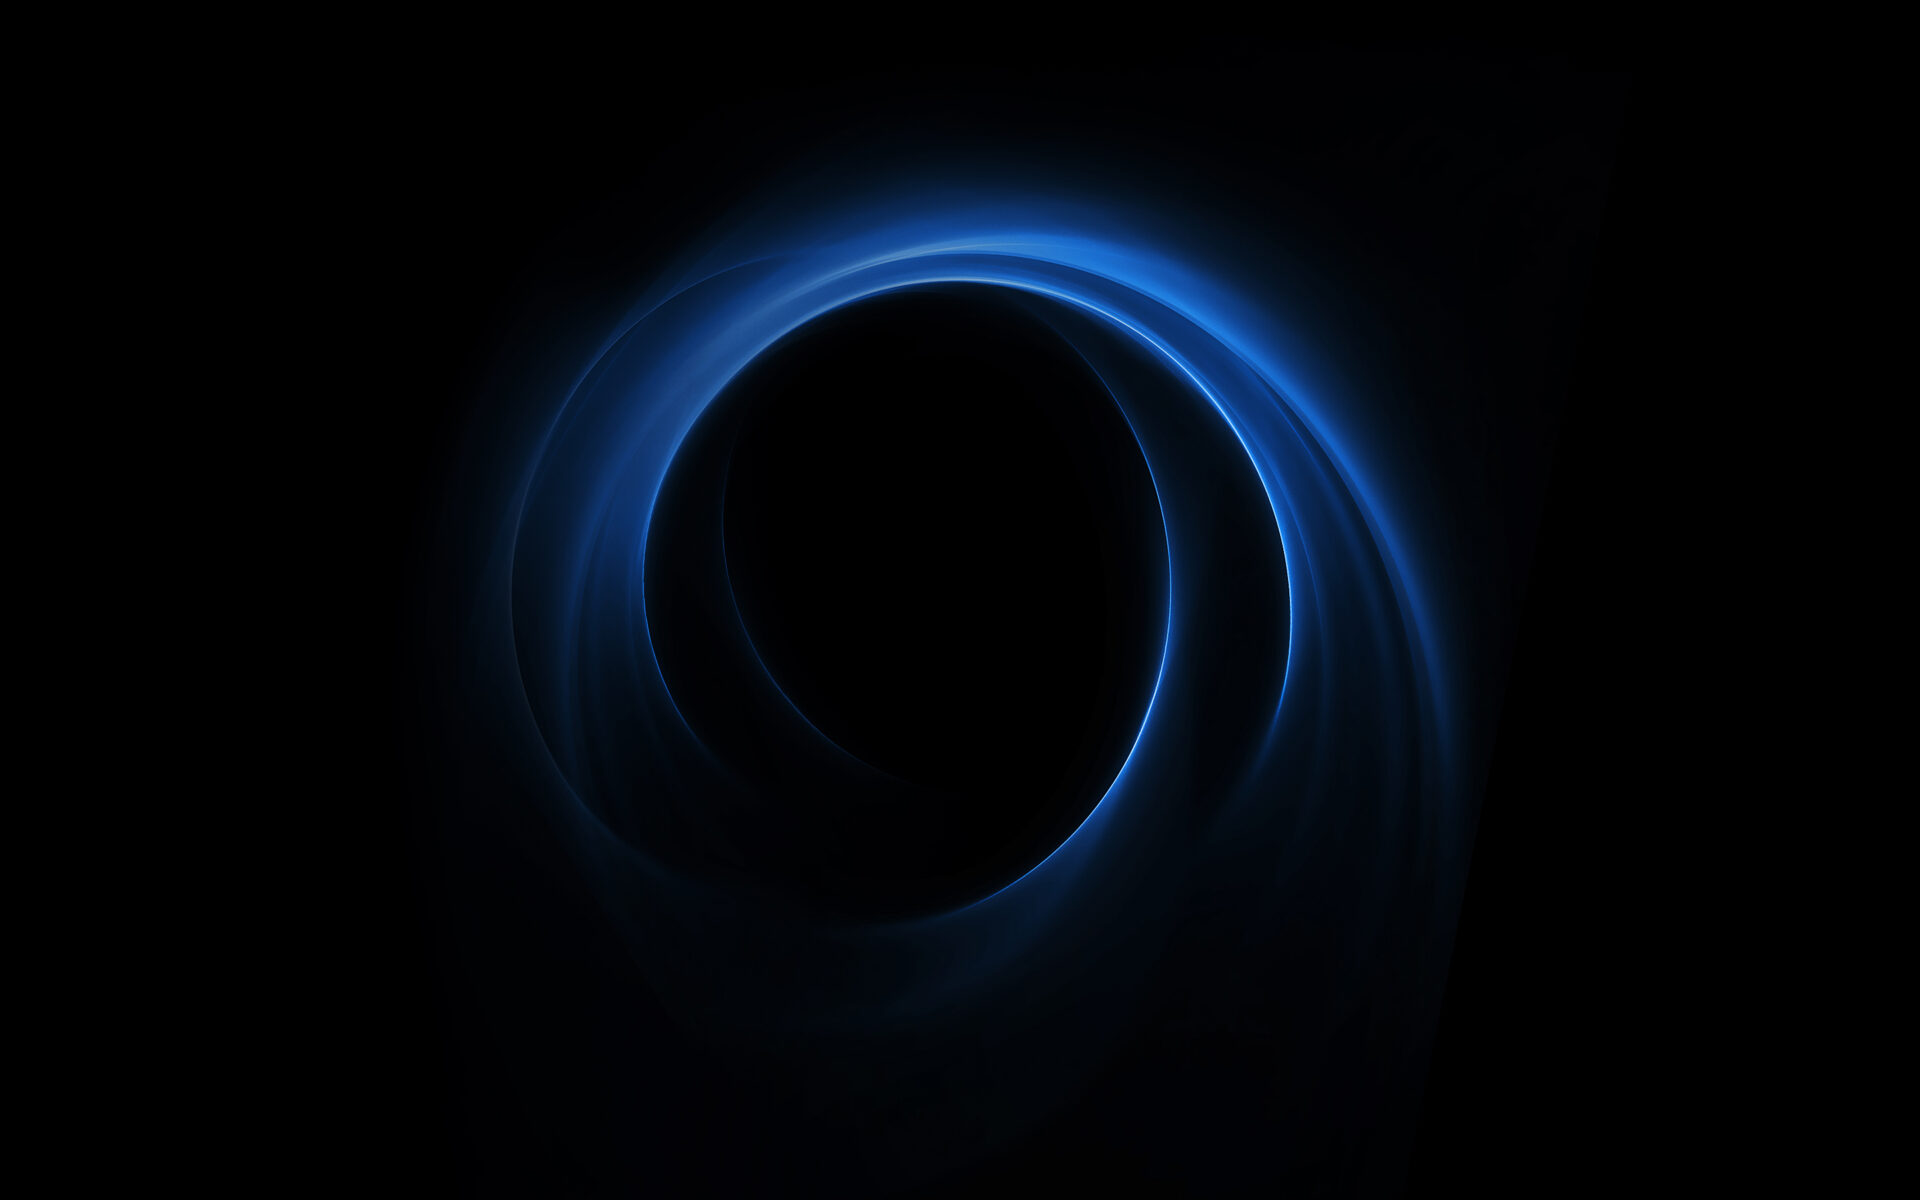 Blue Spiral Huawei Honor V87940712235 - Blue Spiral Huawei Honor V8 - Spiral, OnePlus, Huawei, honor, blue